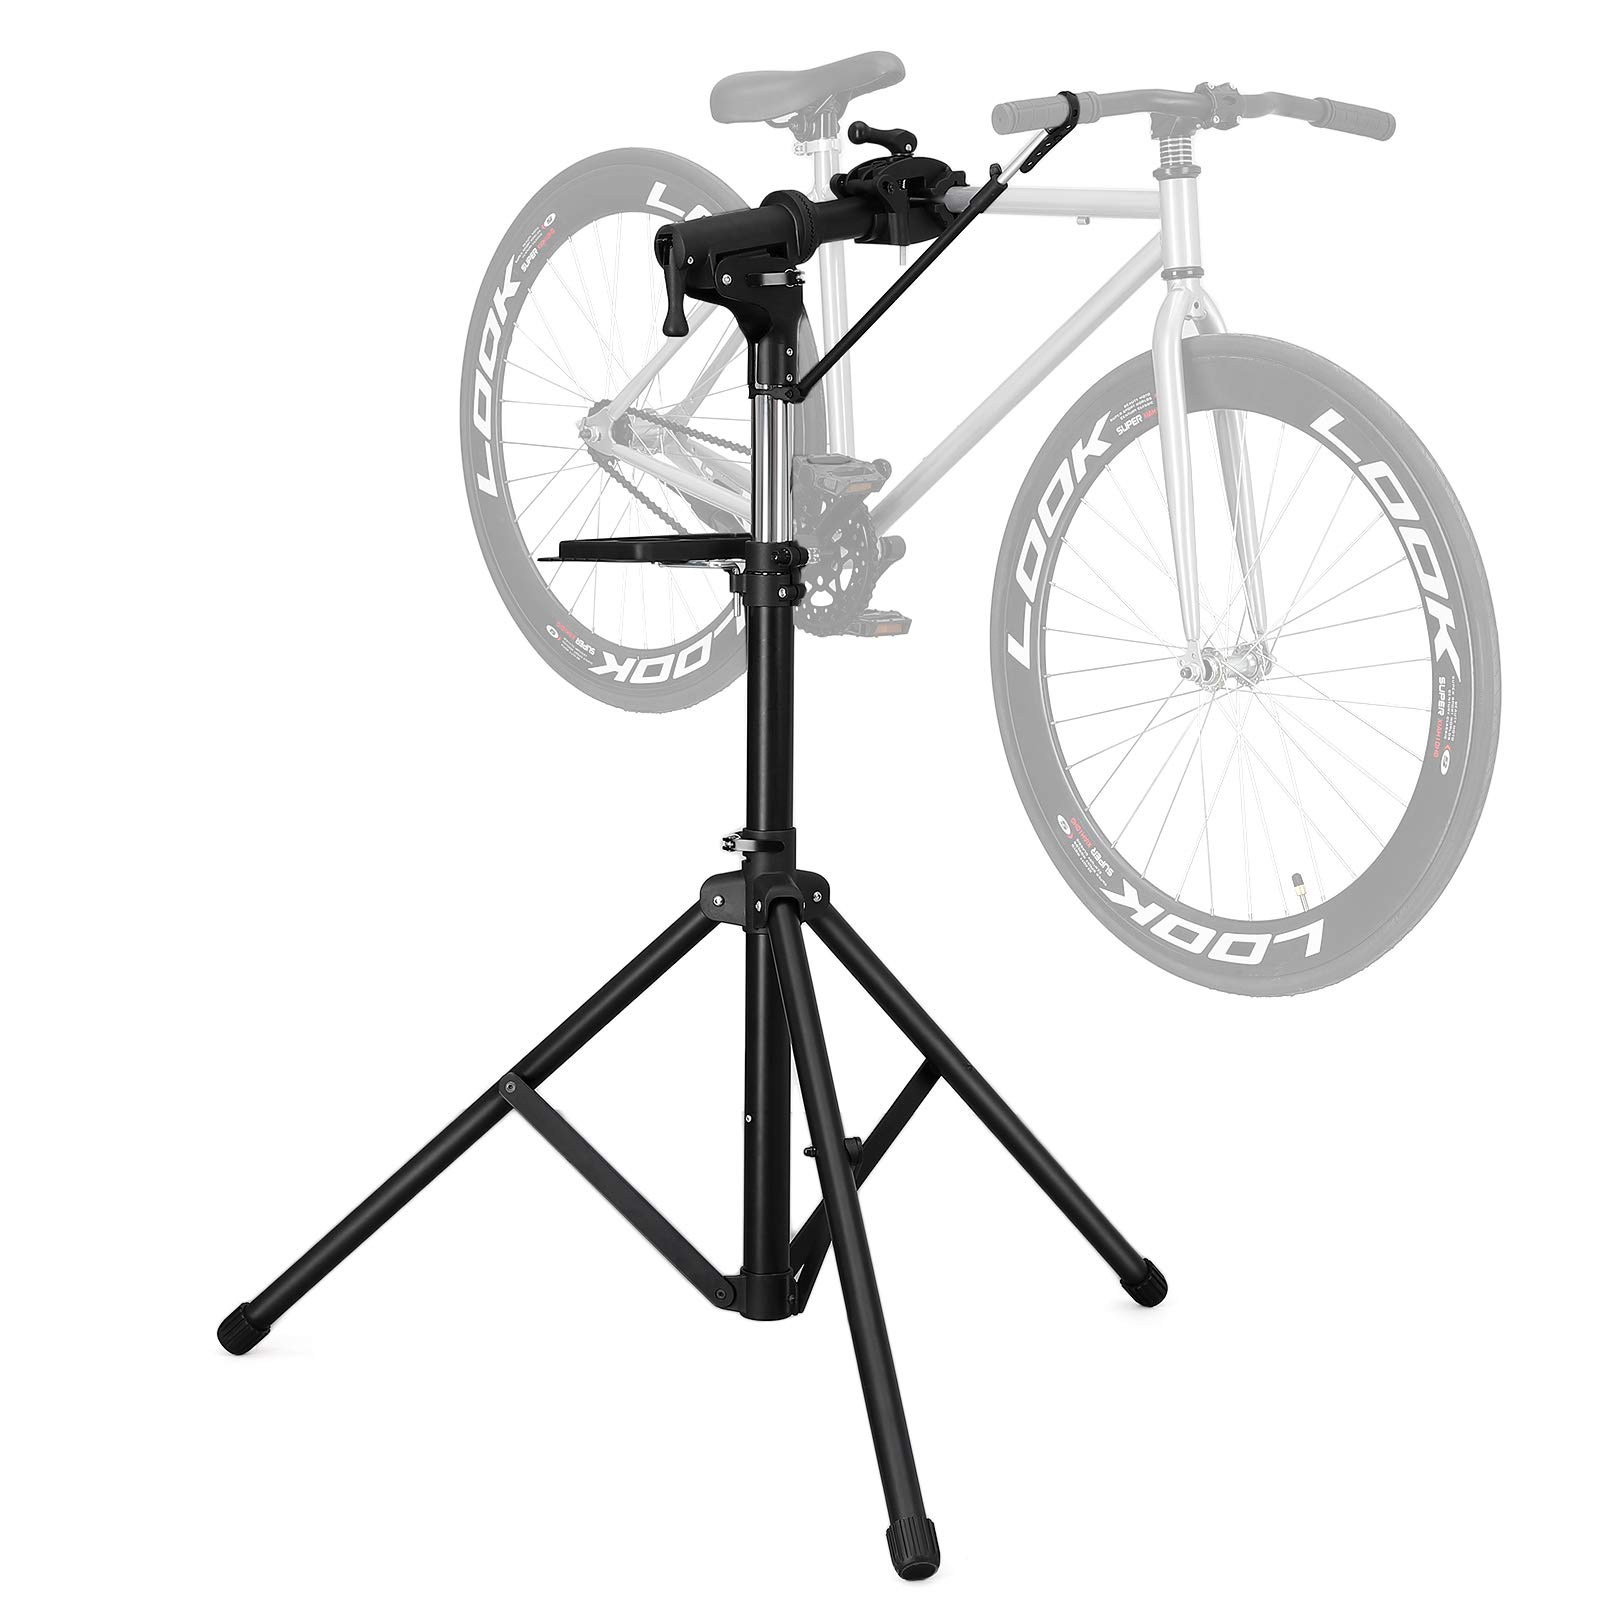 SONGMICS Bike Repair Stand with Aluminum Alloy Arm, Large Tool Tray, Full Features Stronger & Durable, Portable, Compact USBR03B